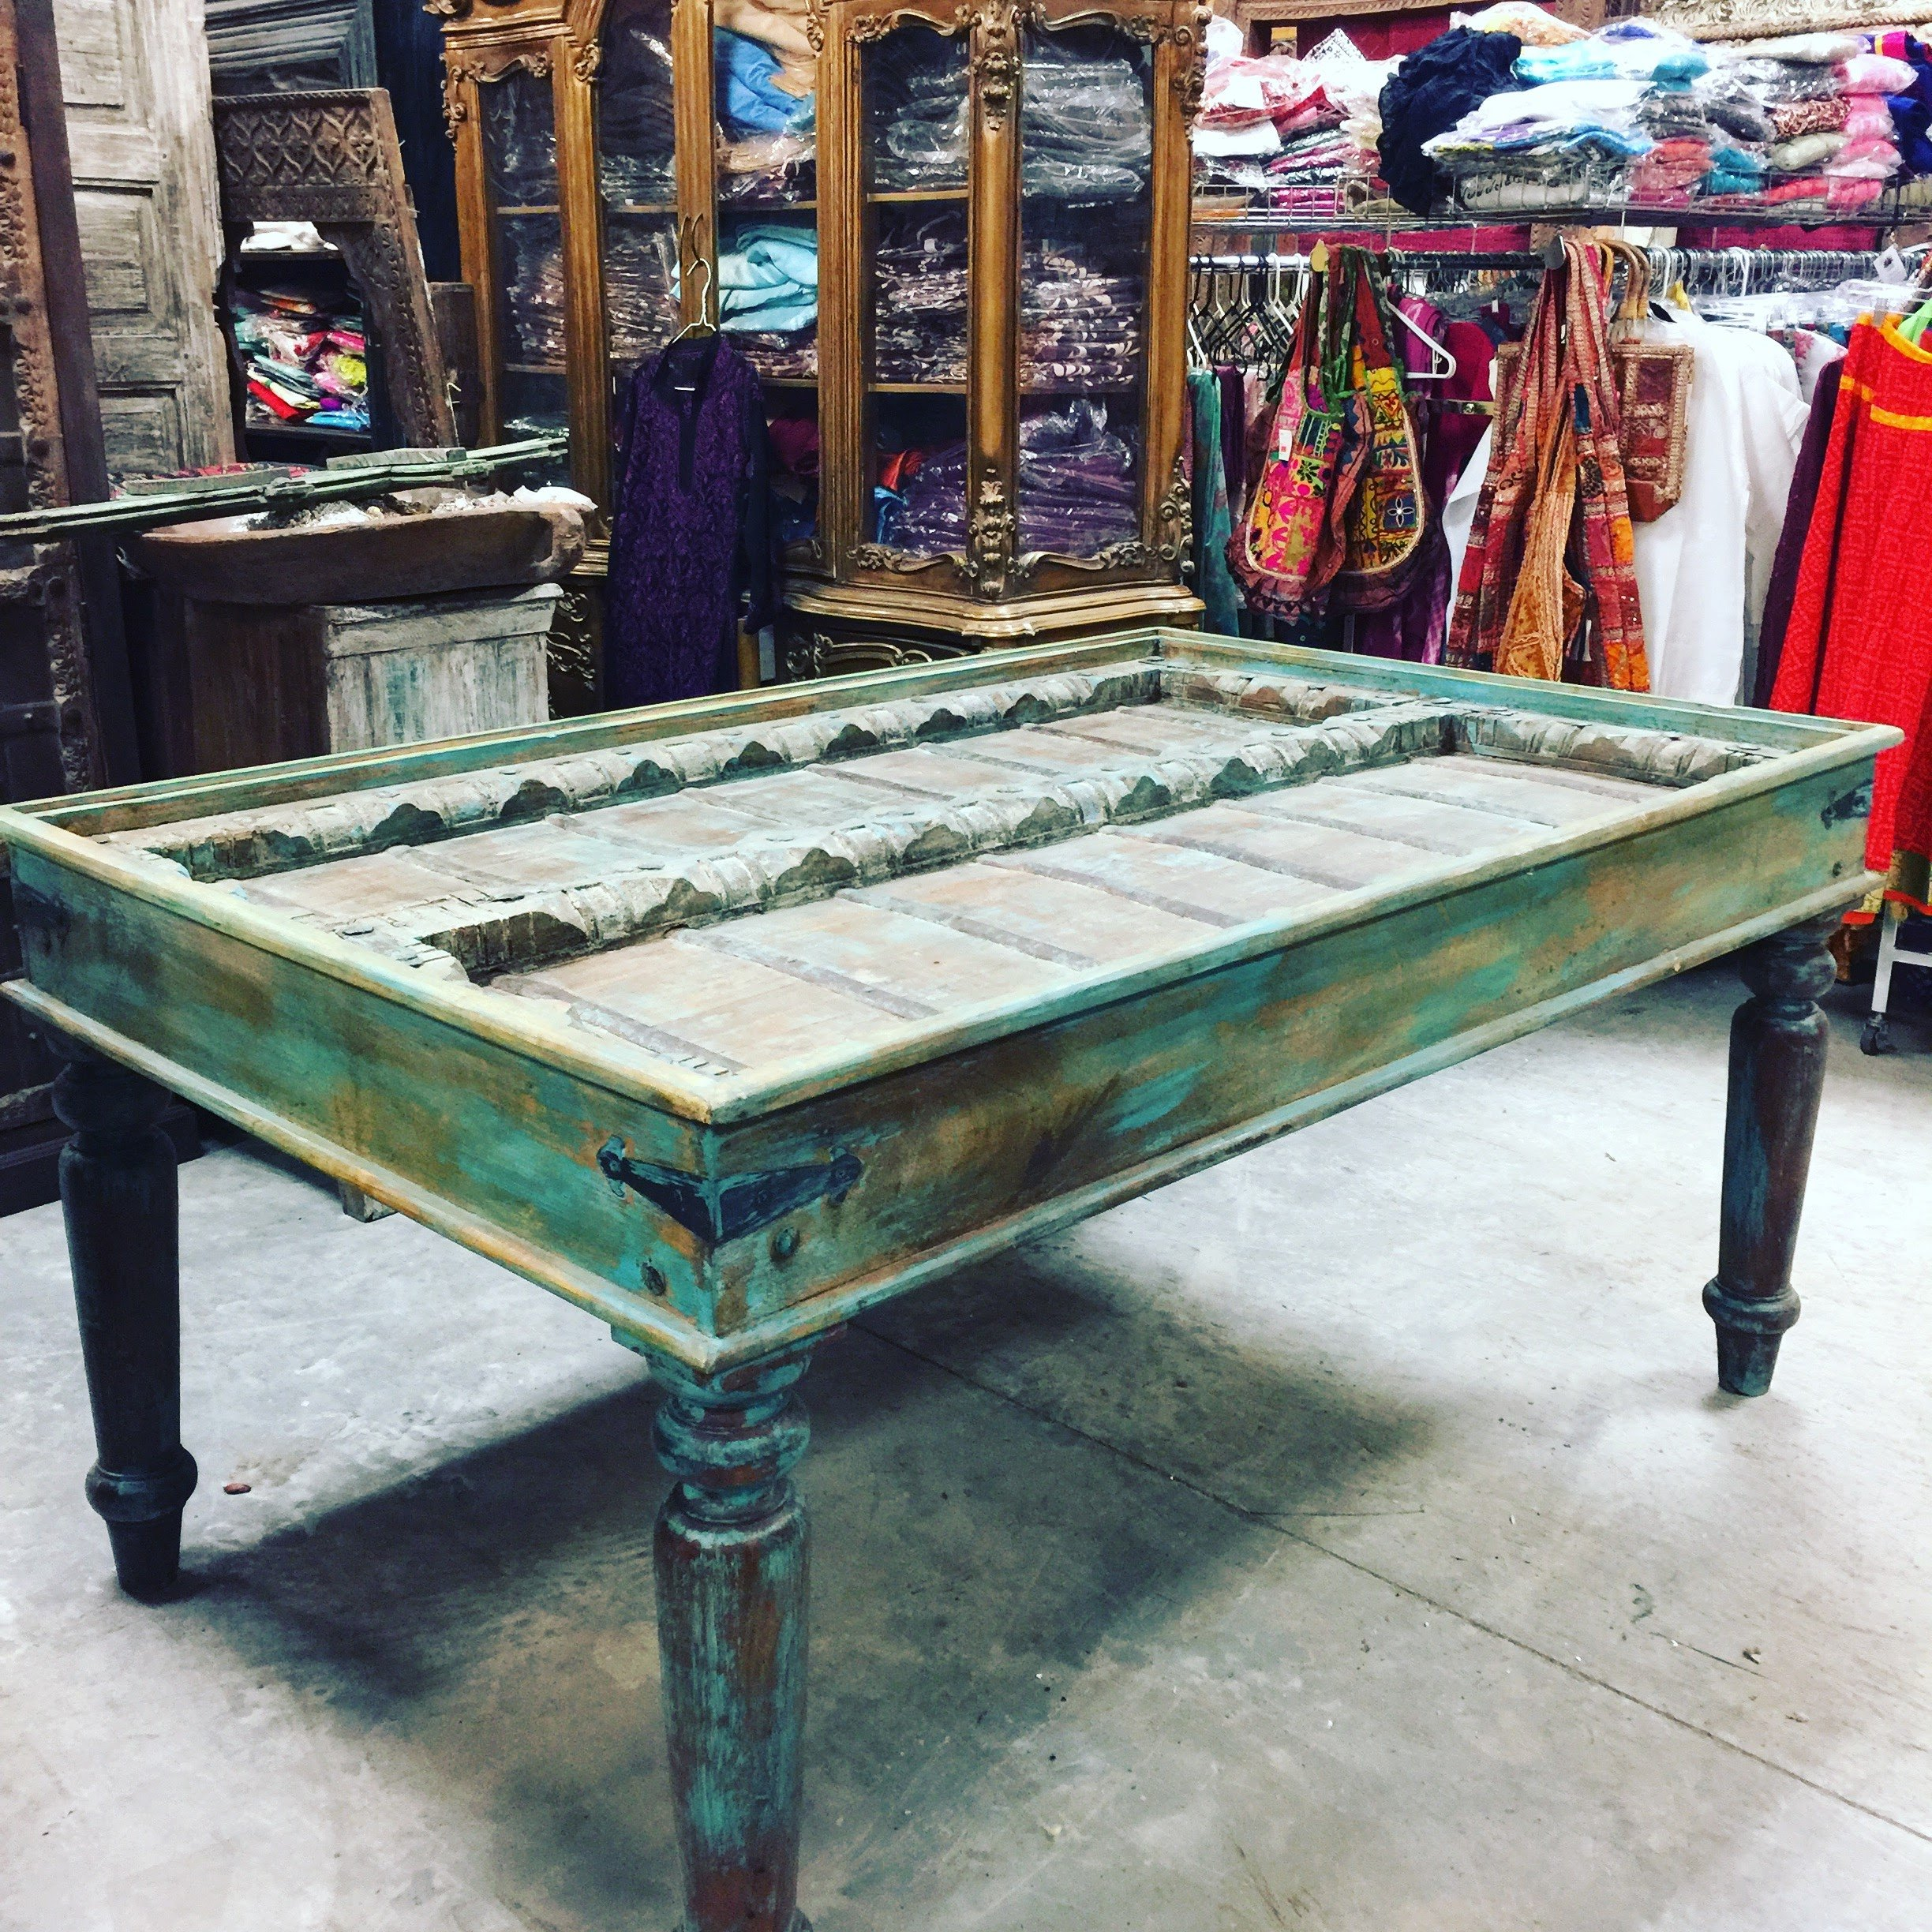 Mogulinterior Antique Distressed Blue Dining Table Haveli Old Door Carved Study Tables Decorative Shabby Chic Interior Design